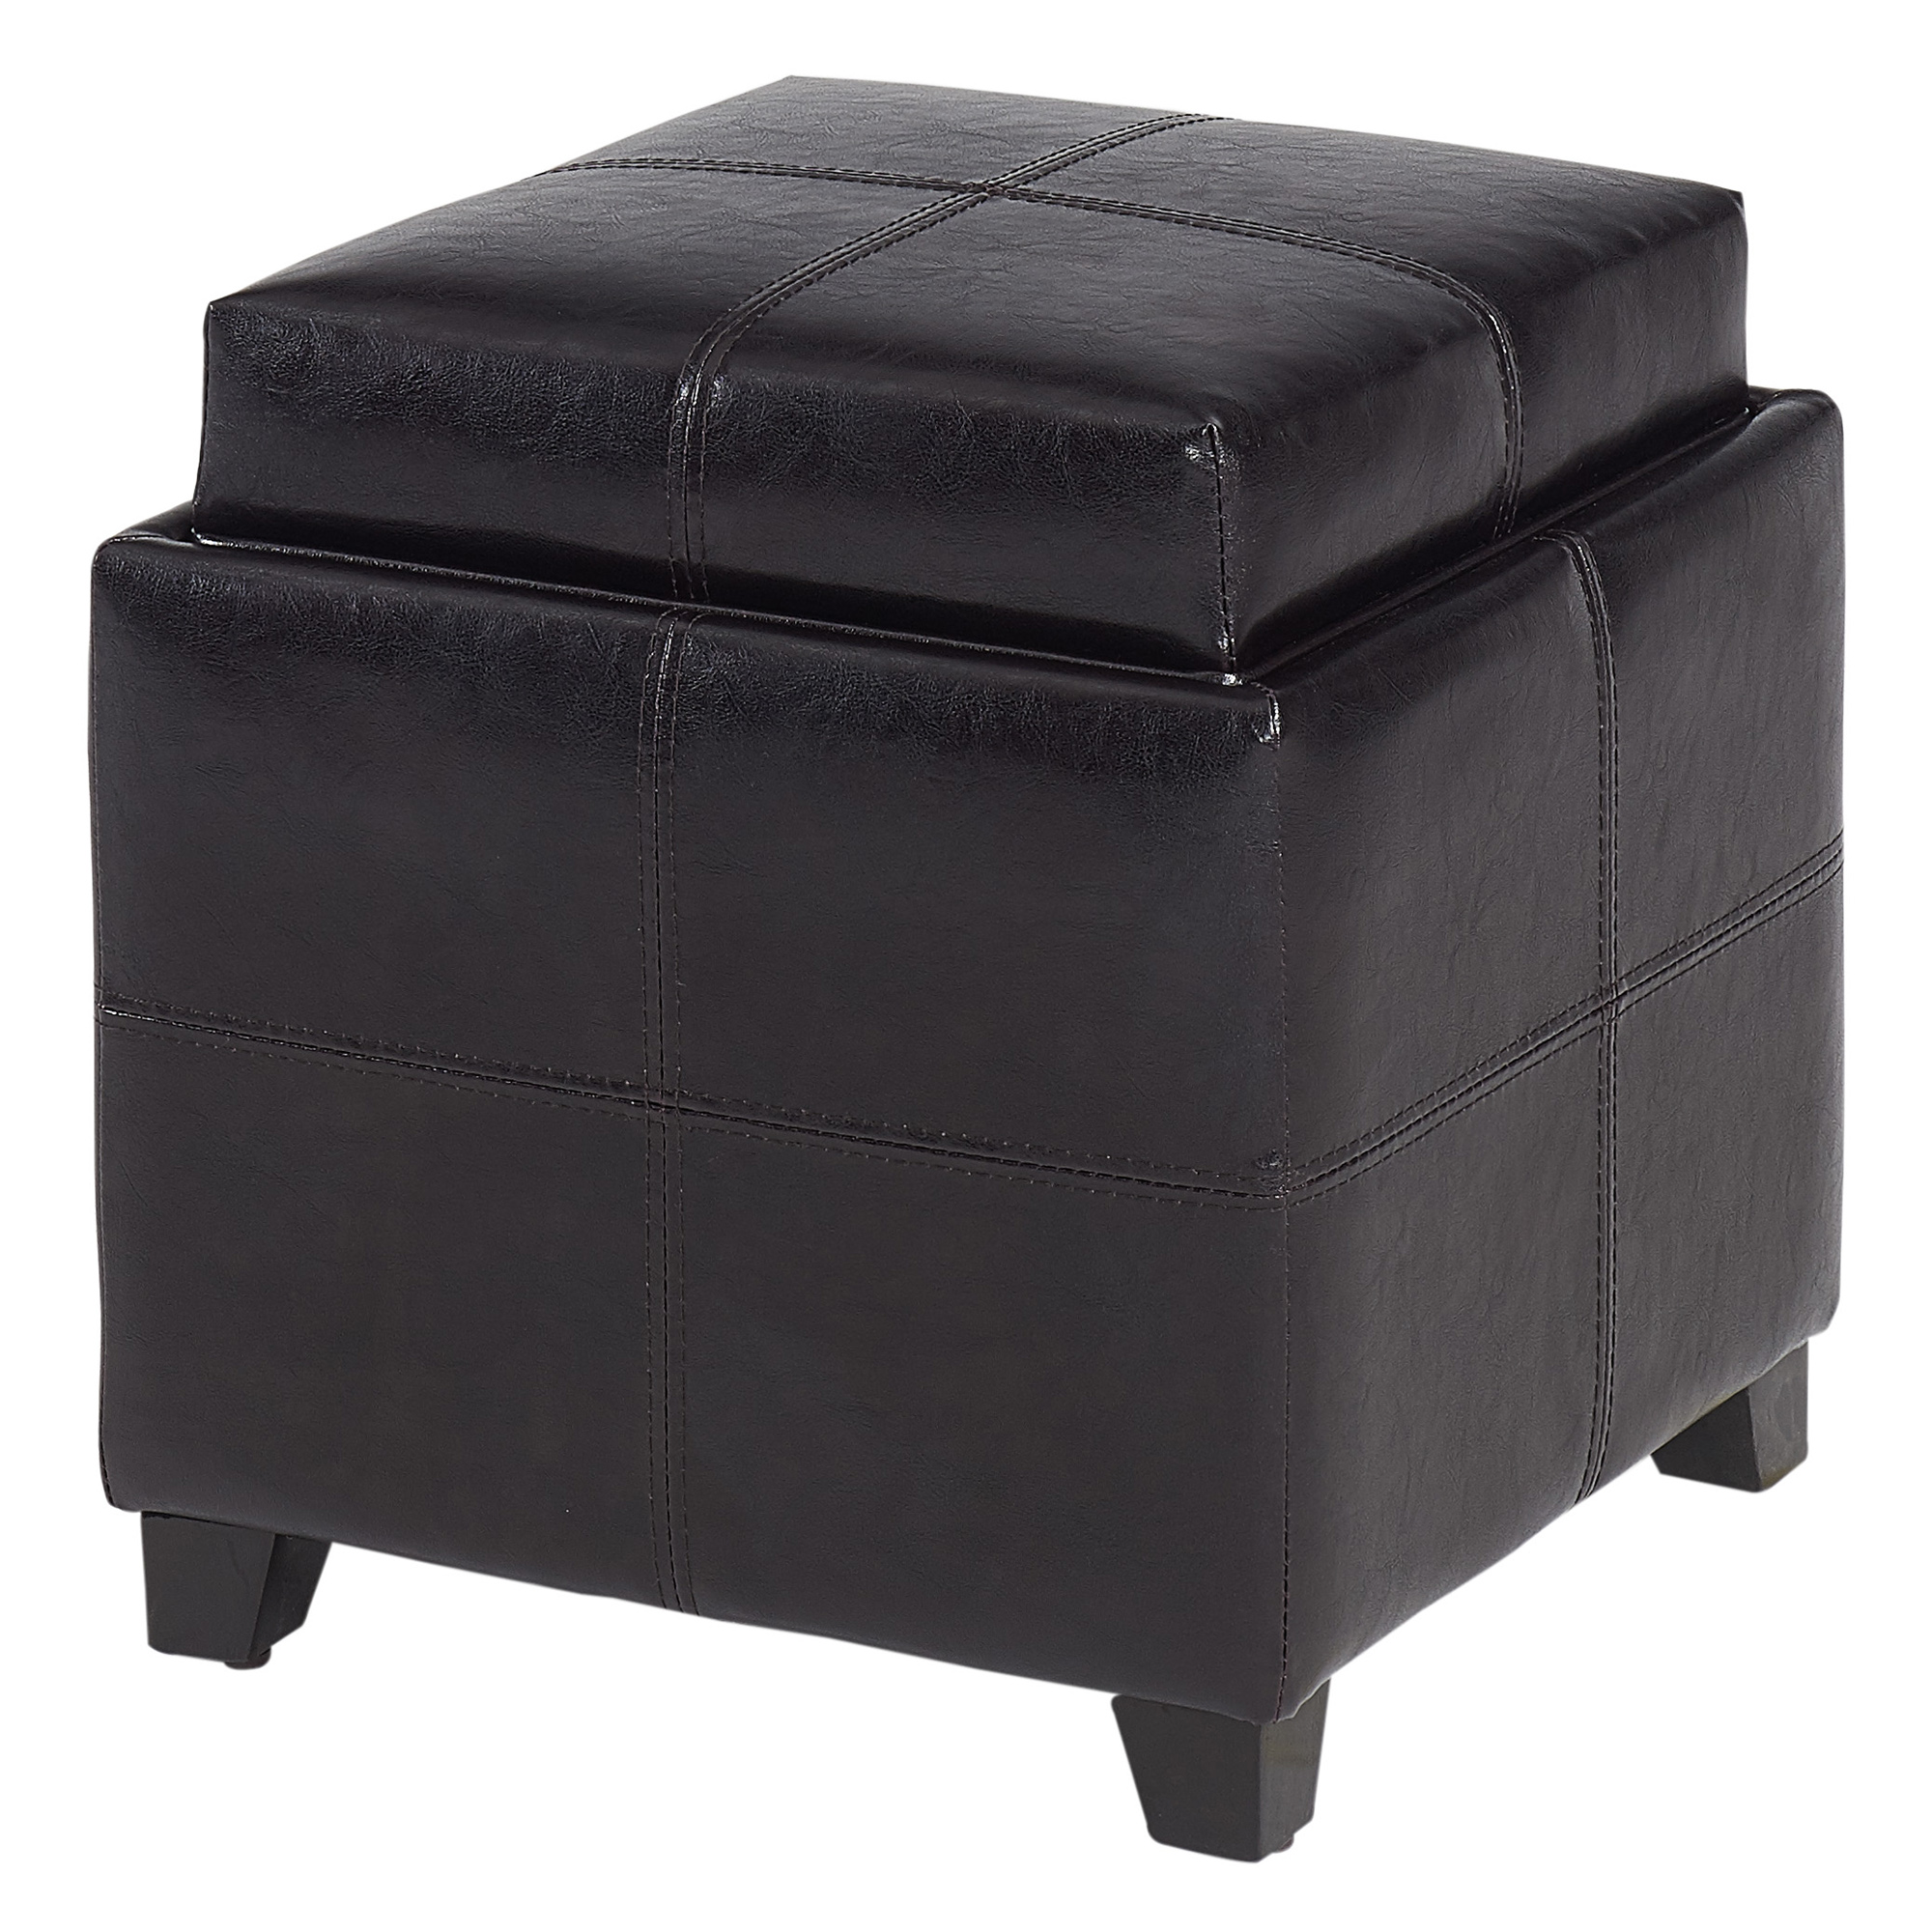 Modern Faux Leather Square Storage Ottoman in Brown